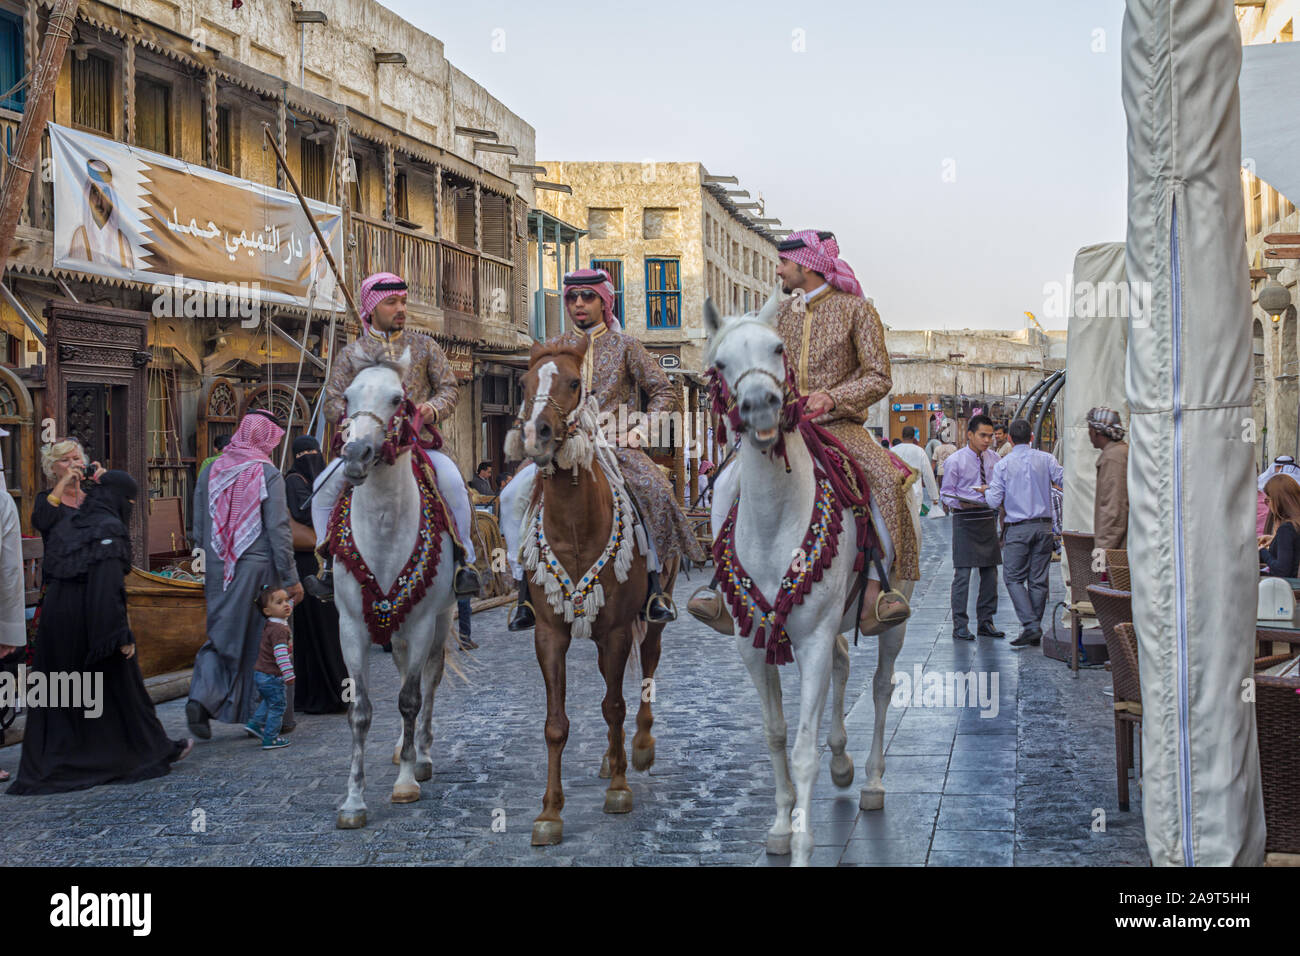 Doha-Qatar, January 24,2013: Souk Waqif in Doha Qatar main street day light view with traditional guards riding horses and people Stock Photo